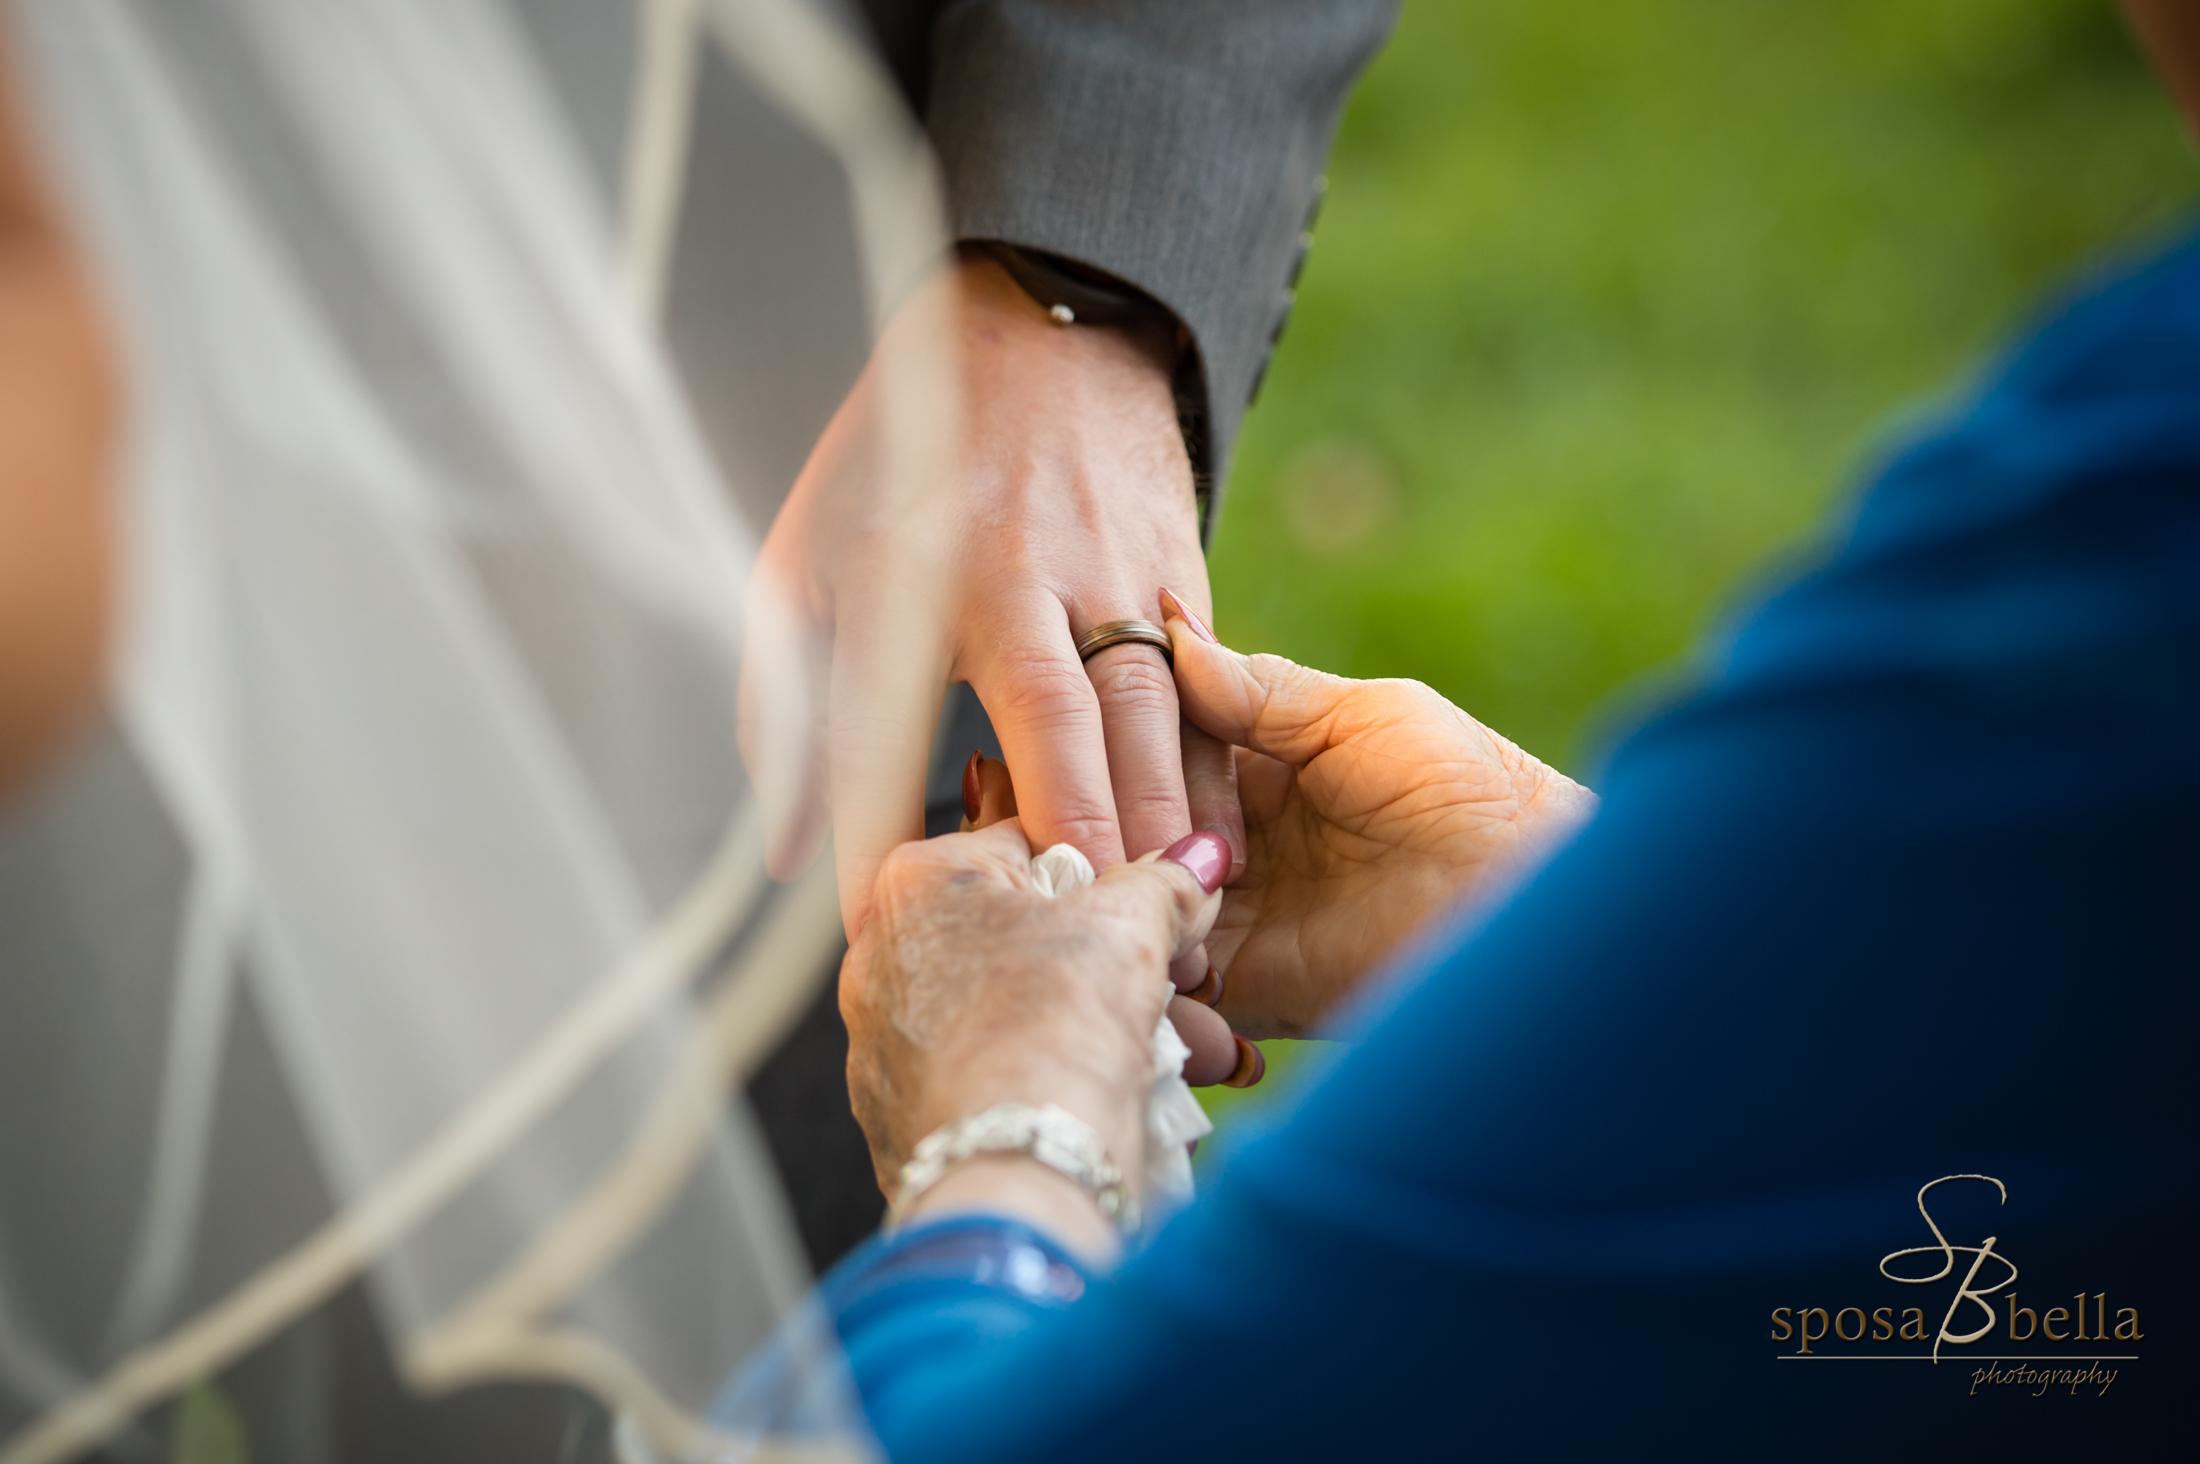 A beautiful moment captured as a Grandmother admires the Groom's new accessory.